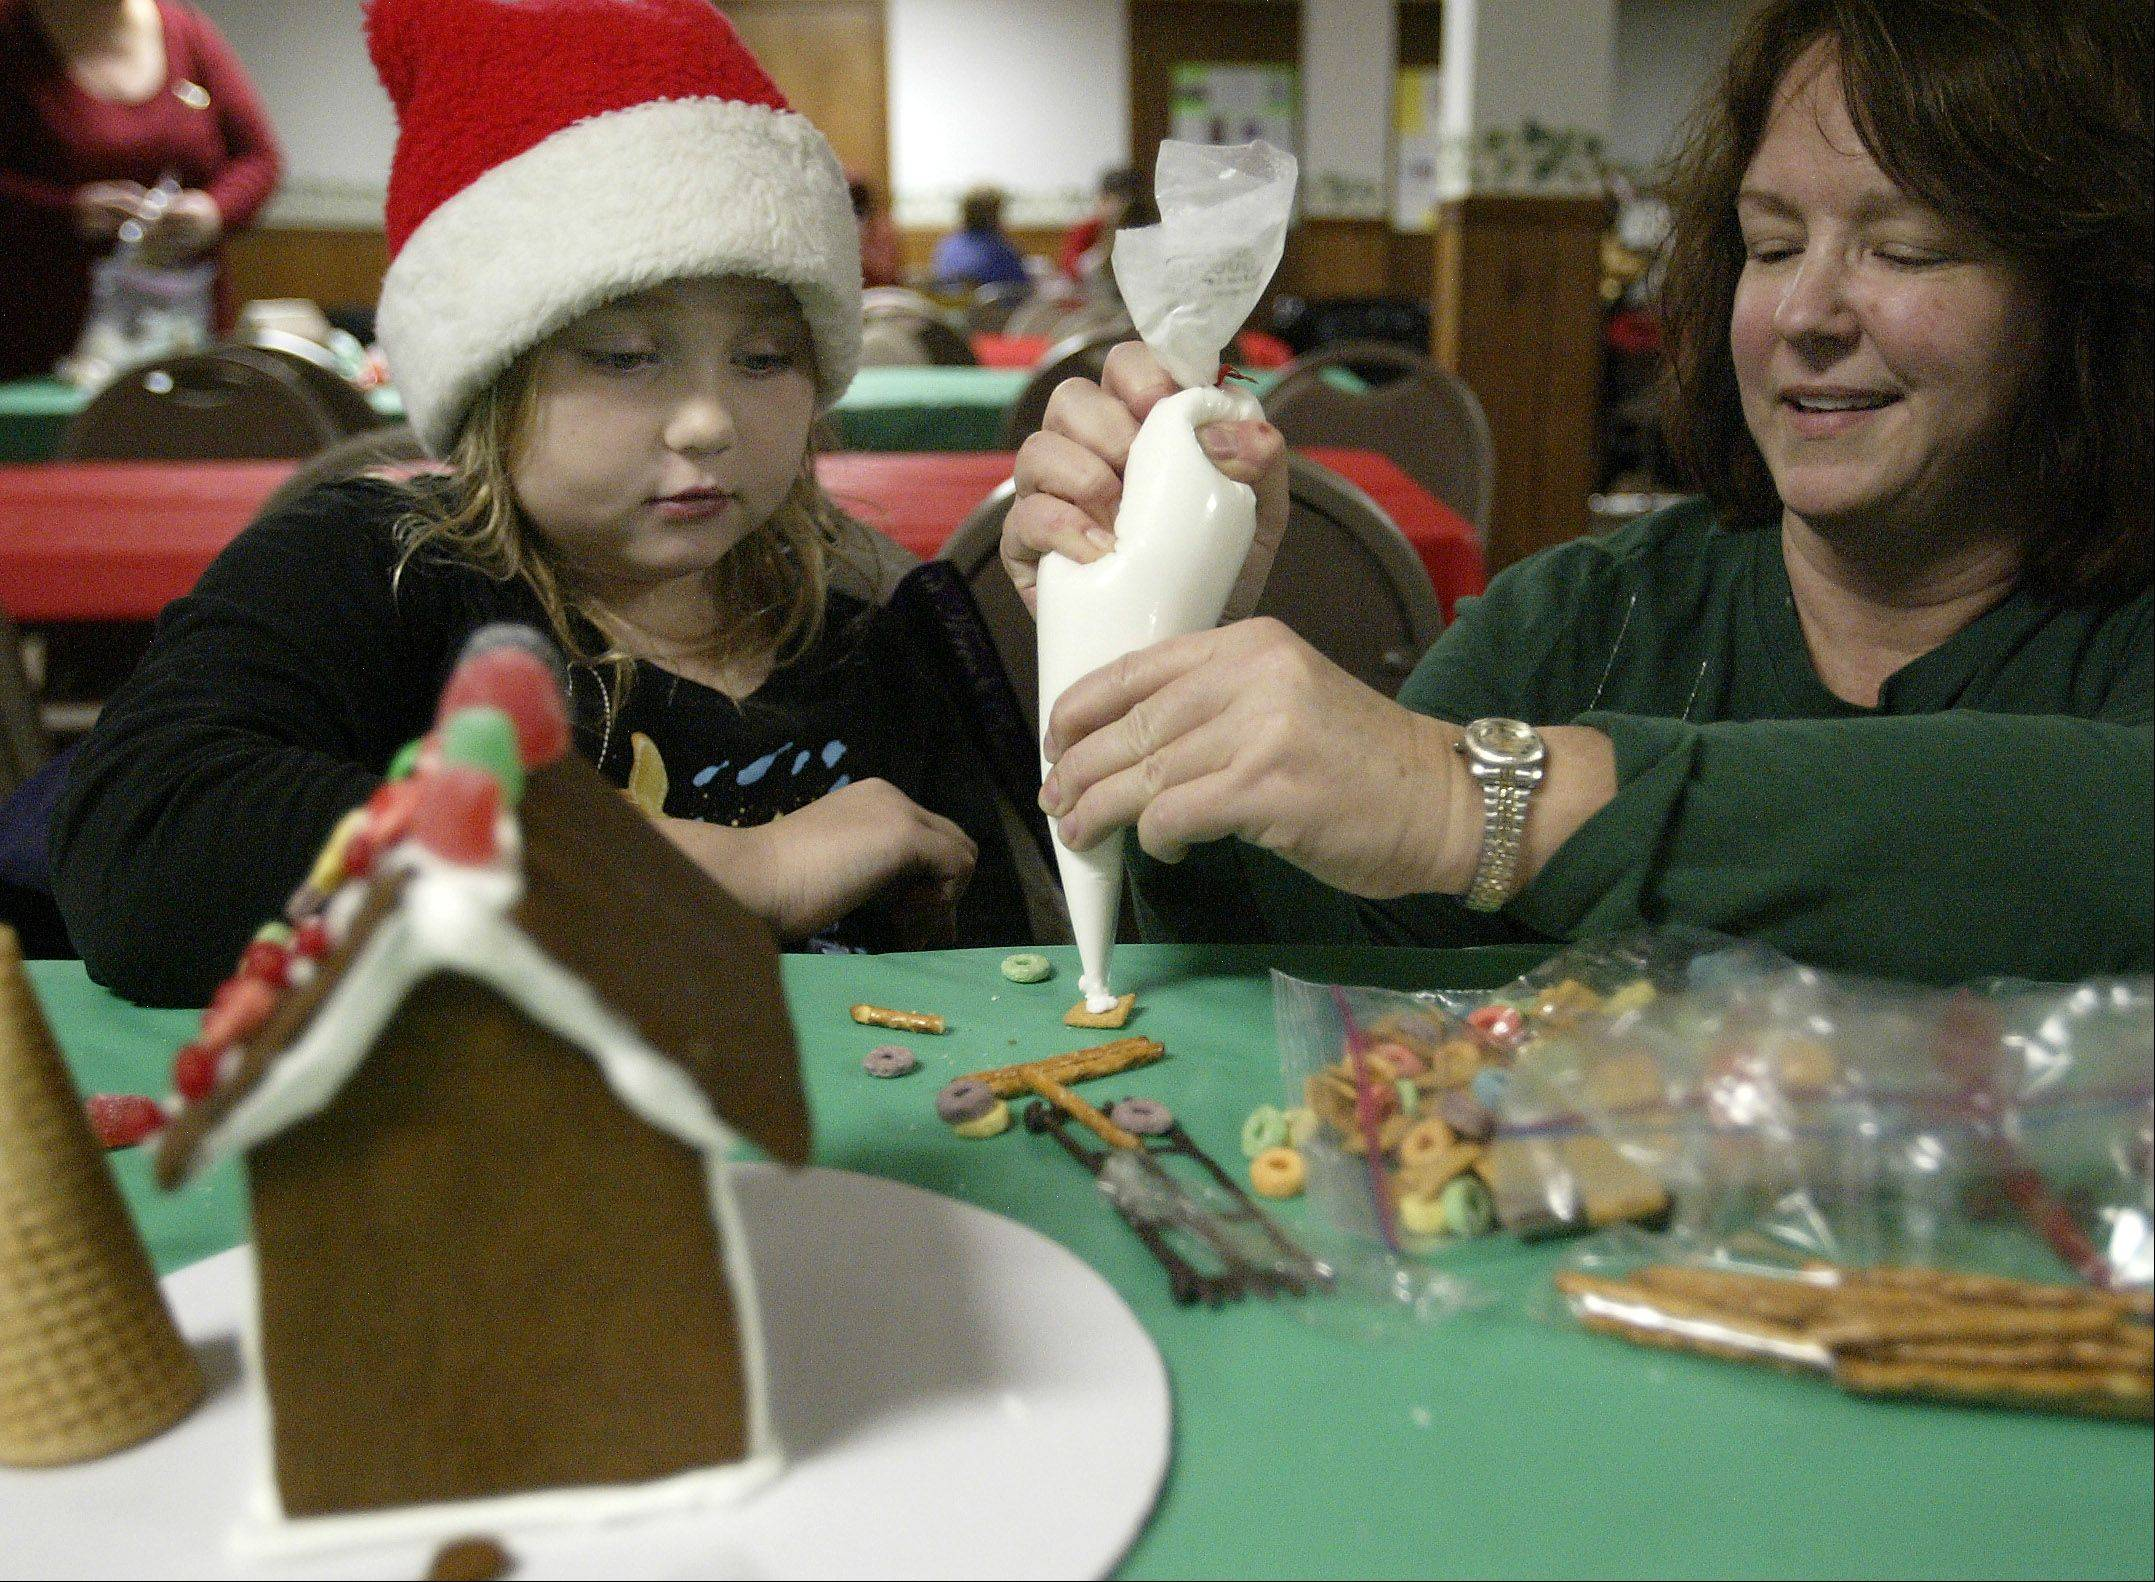 Kylie Marbury-Savage, 7, of West Dundee works on a gingerbread house with her grandmother Charisse Marbury of Carpentersville at last year's Dickens in Dundee festival.